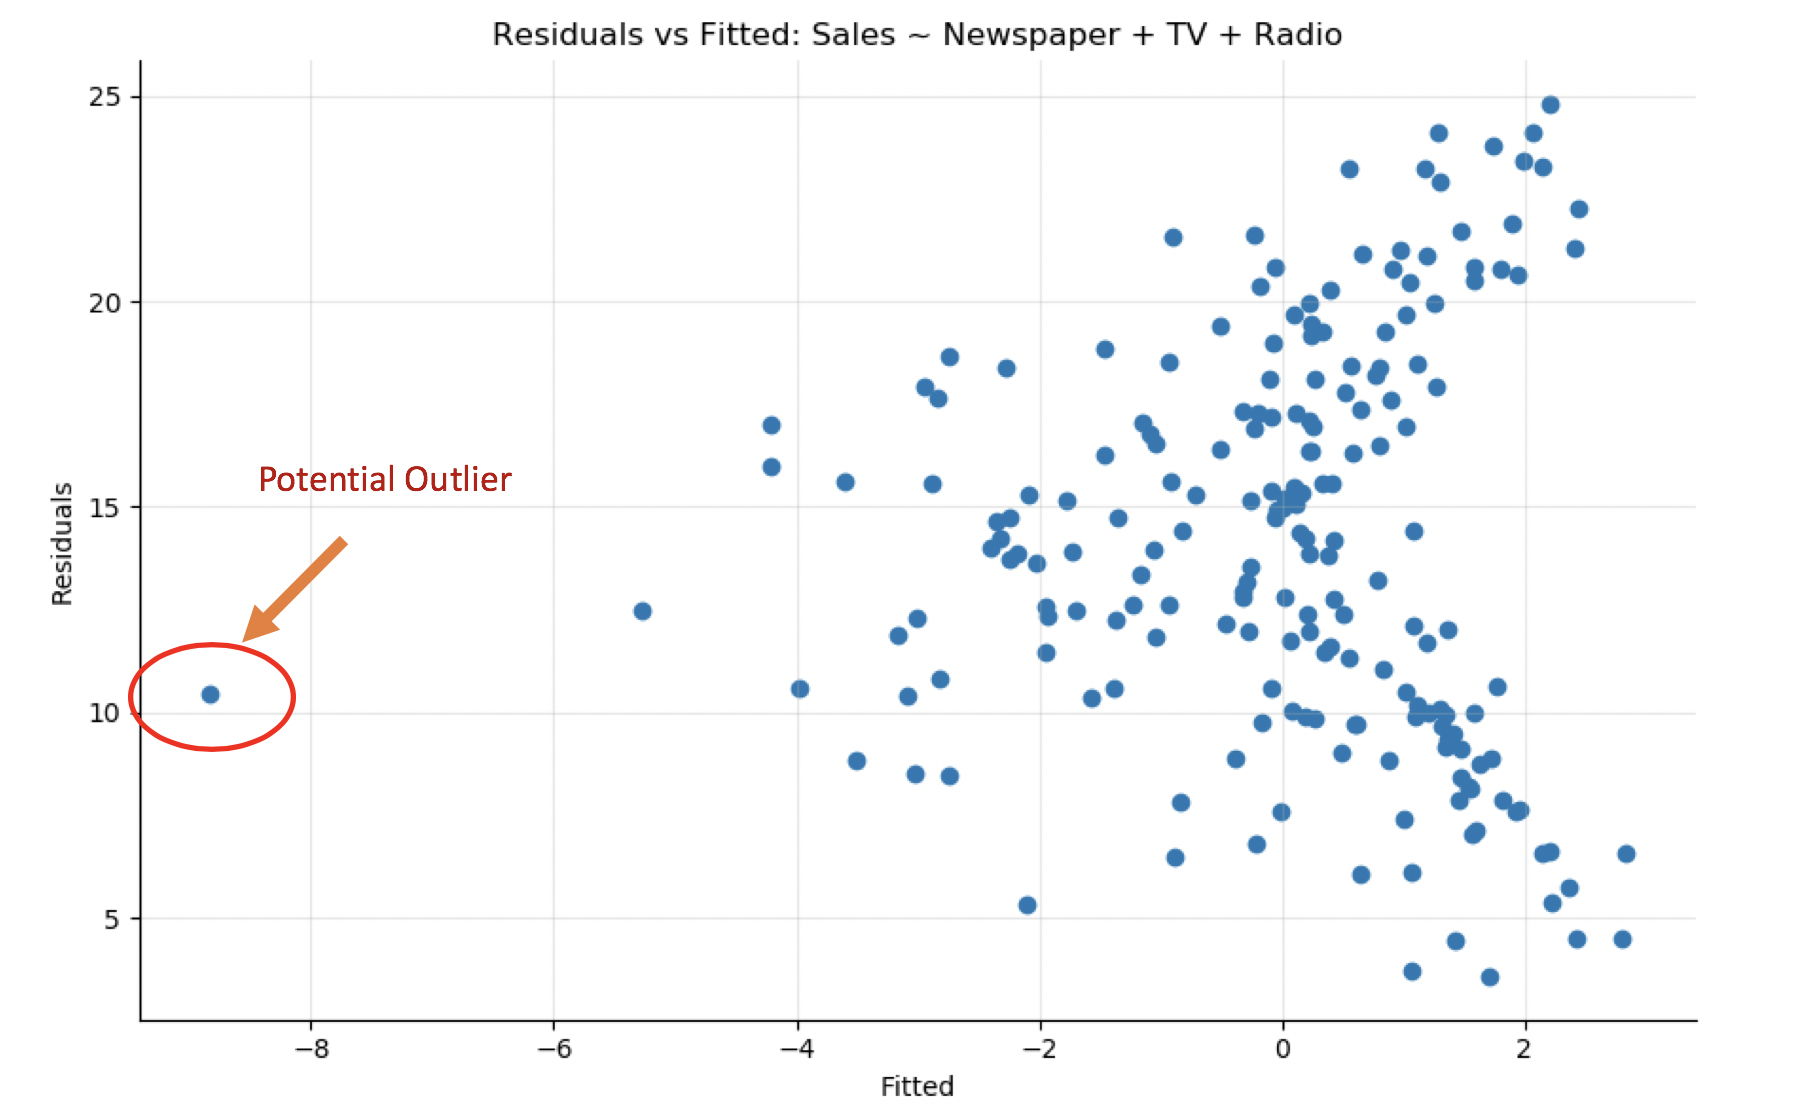 Spot the potential outlier